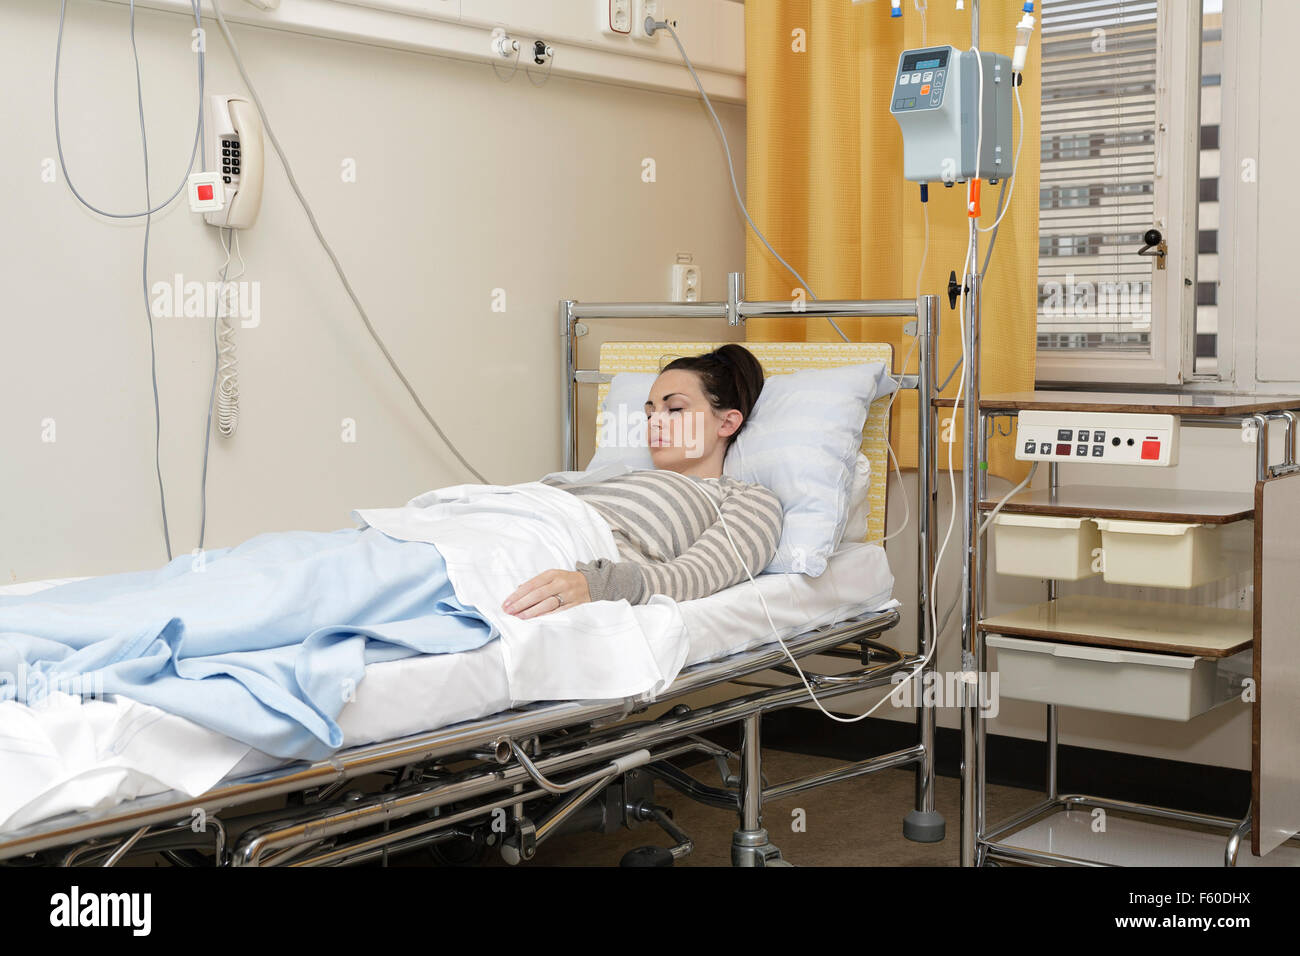 Sick Young Woman Laying In Hospital Bed With Central